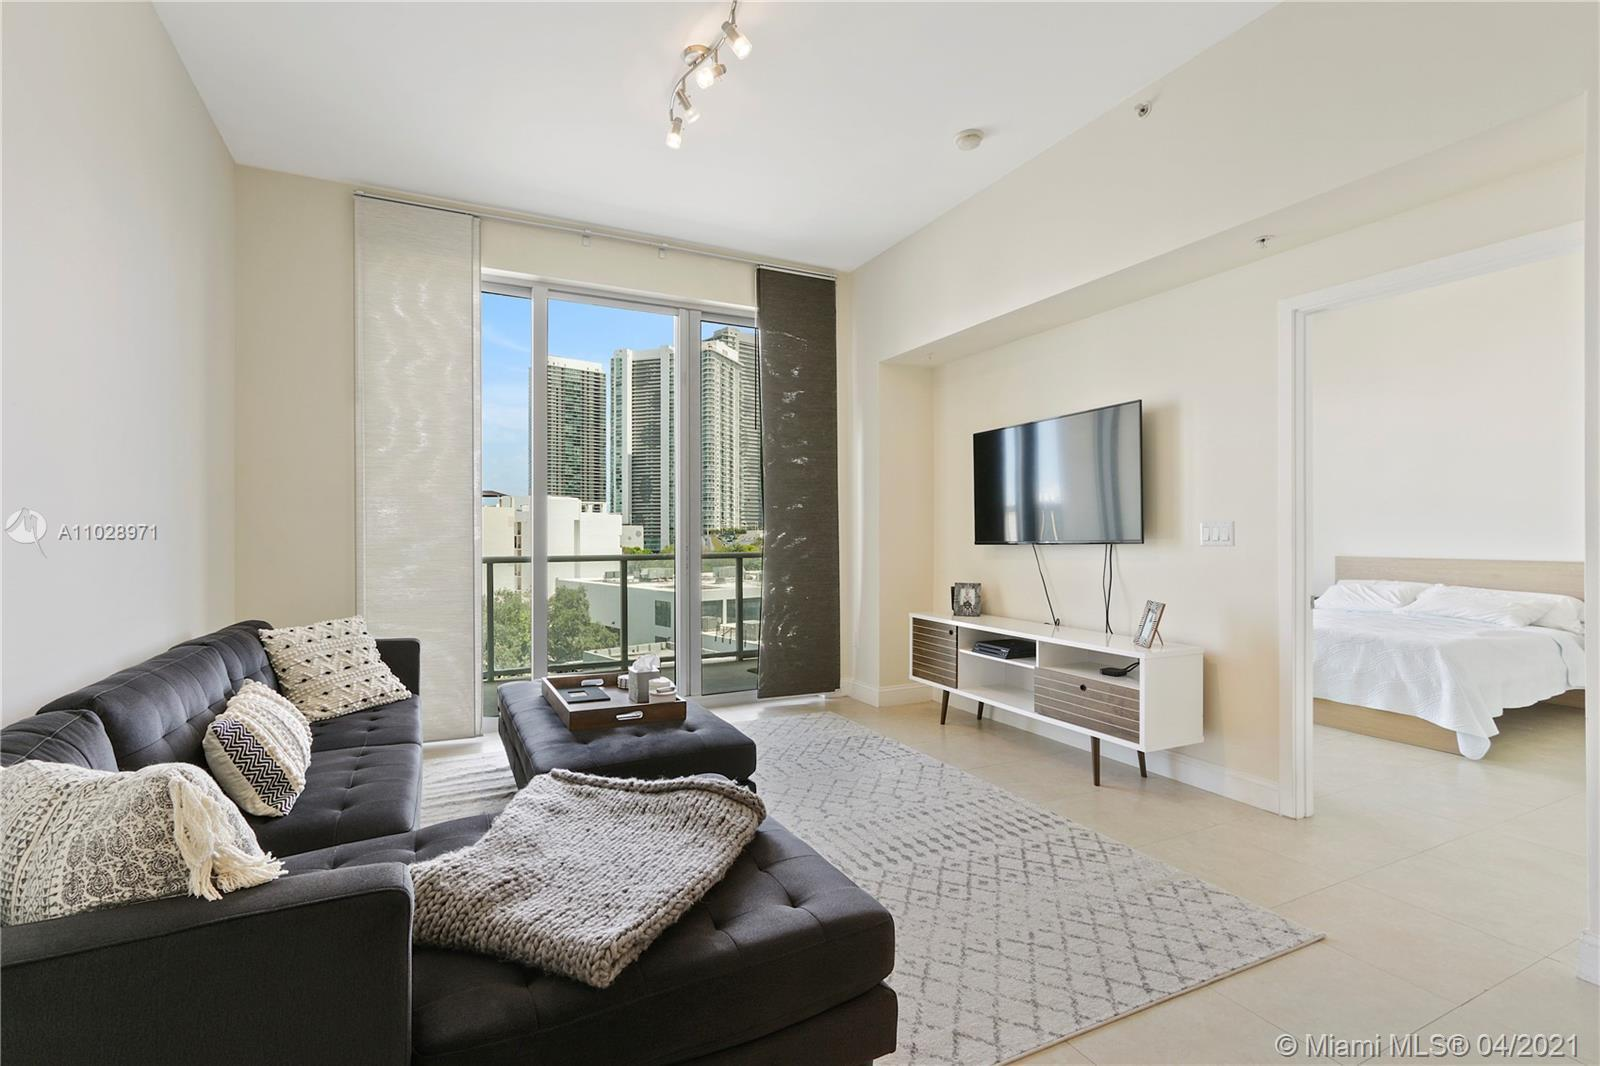 Beautiful Bayfront unit. Floor to ceiling windows with a large glass balcony. Upscale building loc